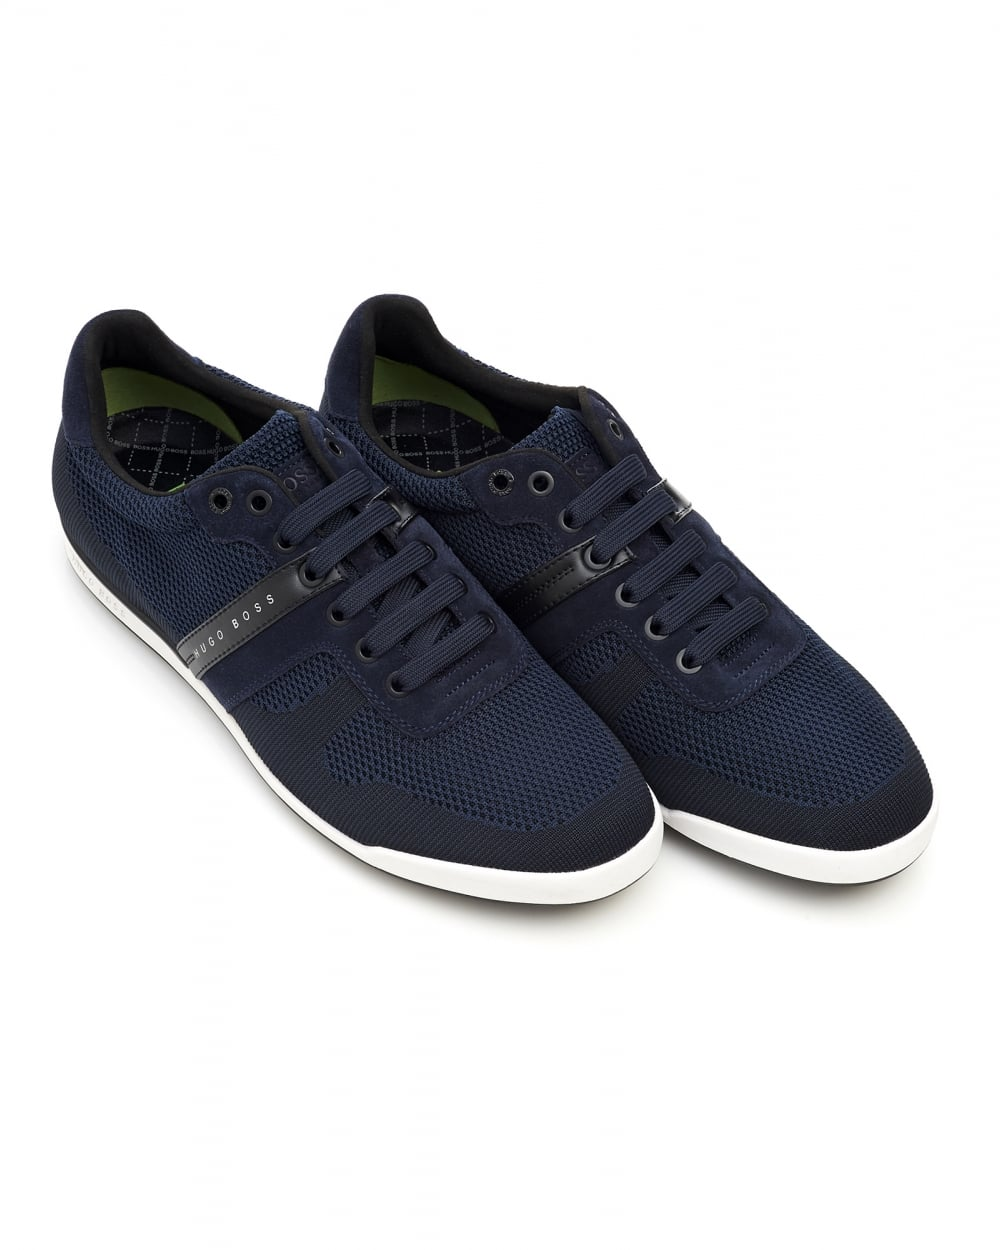 hugo boss green mens arkansas lowp syjq trainers navy. Black Bedroom Furniture Sets. Home Design Ideas